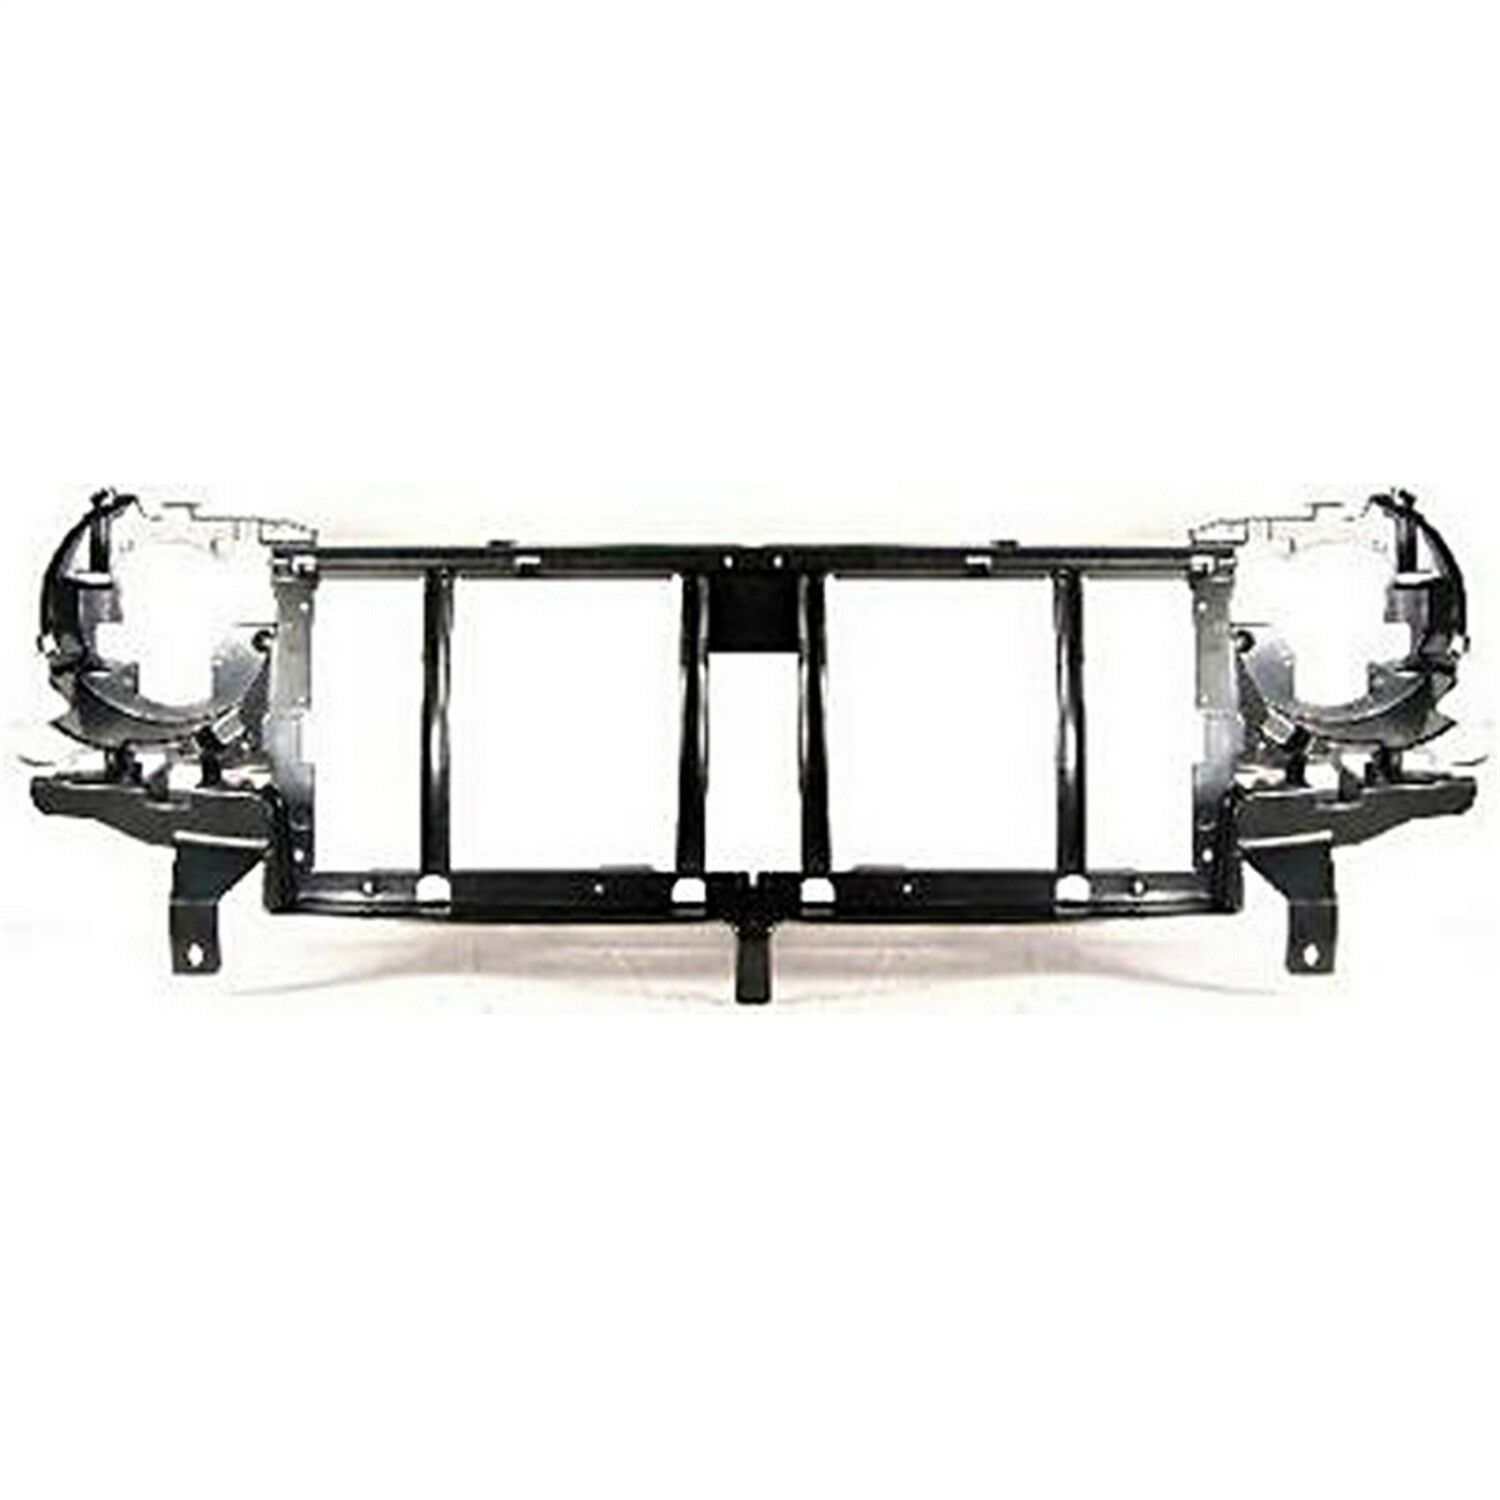 Grille Support for Jeep Liberty 2002-2004 Omix-Ada 12042